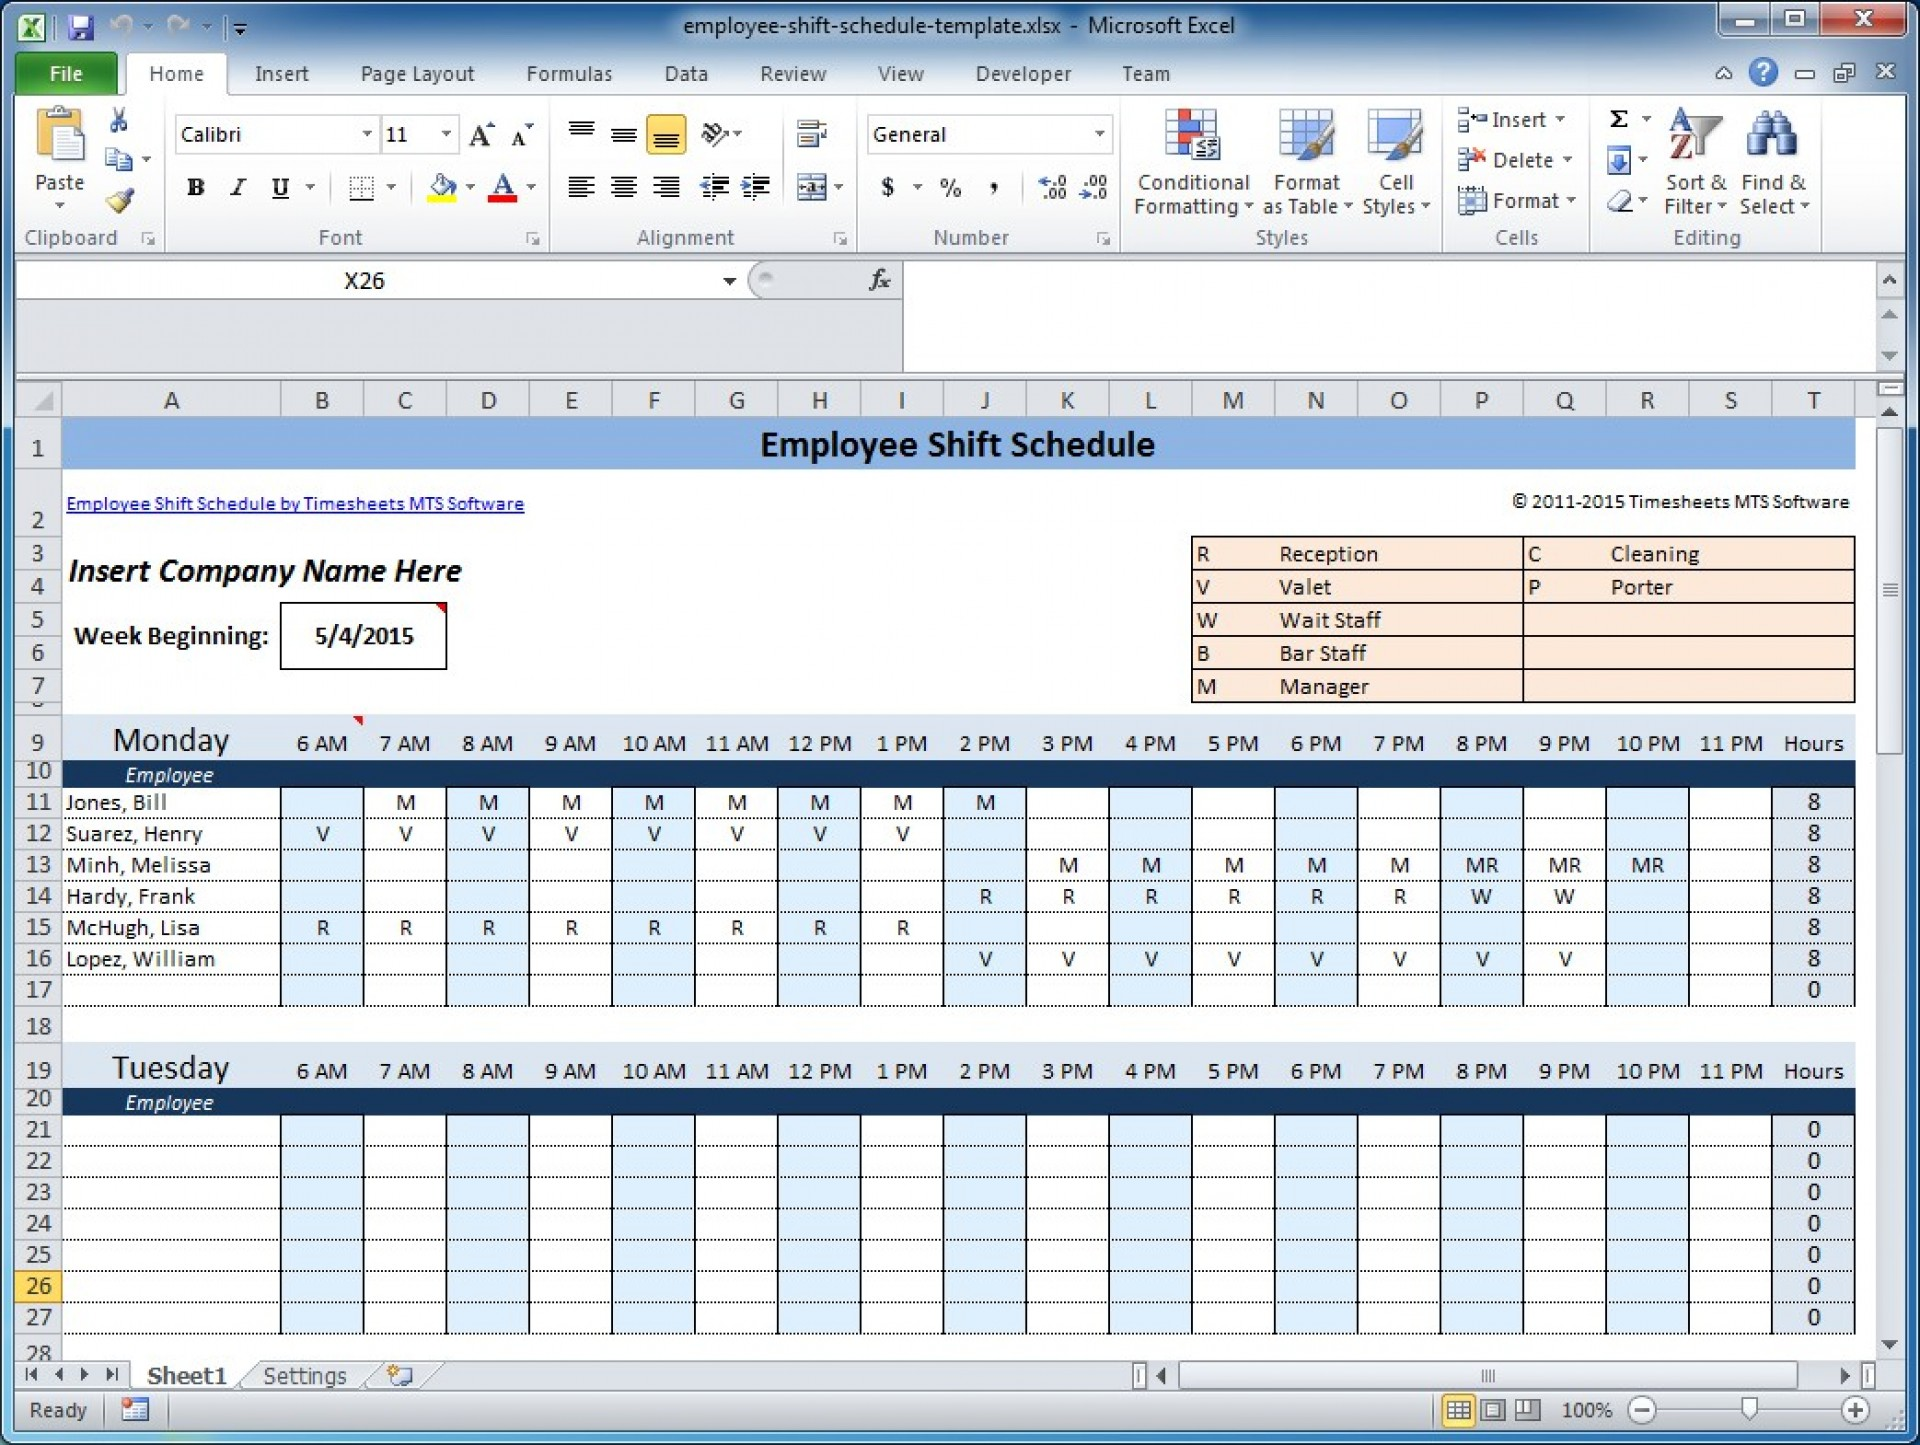 Staffing Schedule Weekly Employee Shift Schedule Template Excel